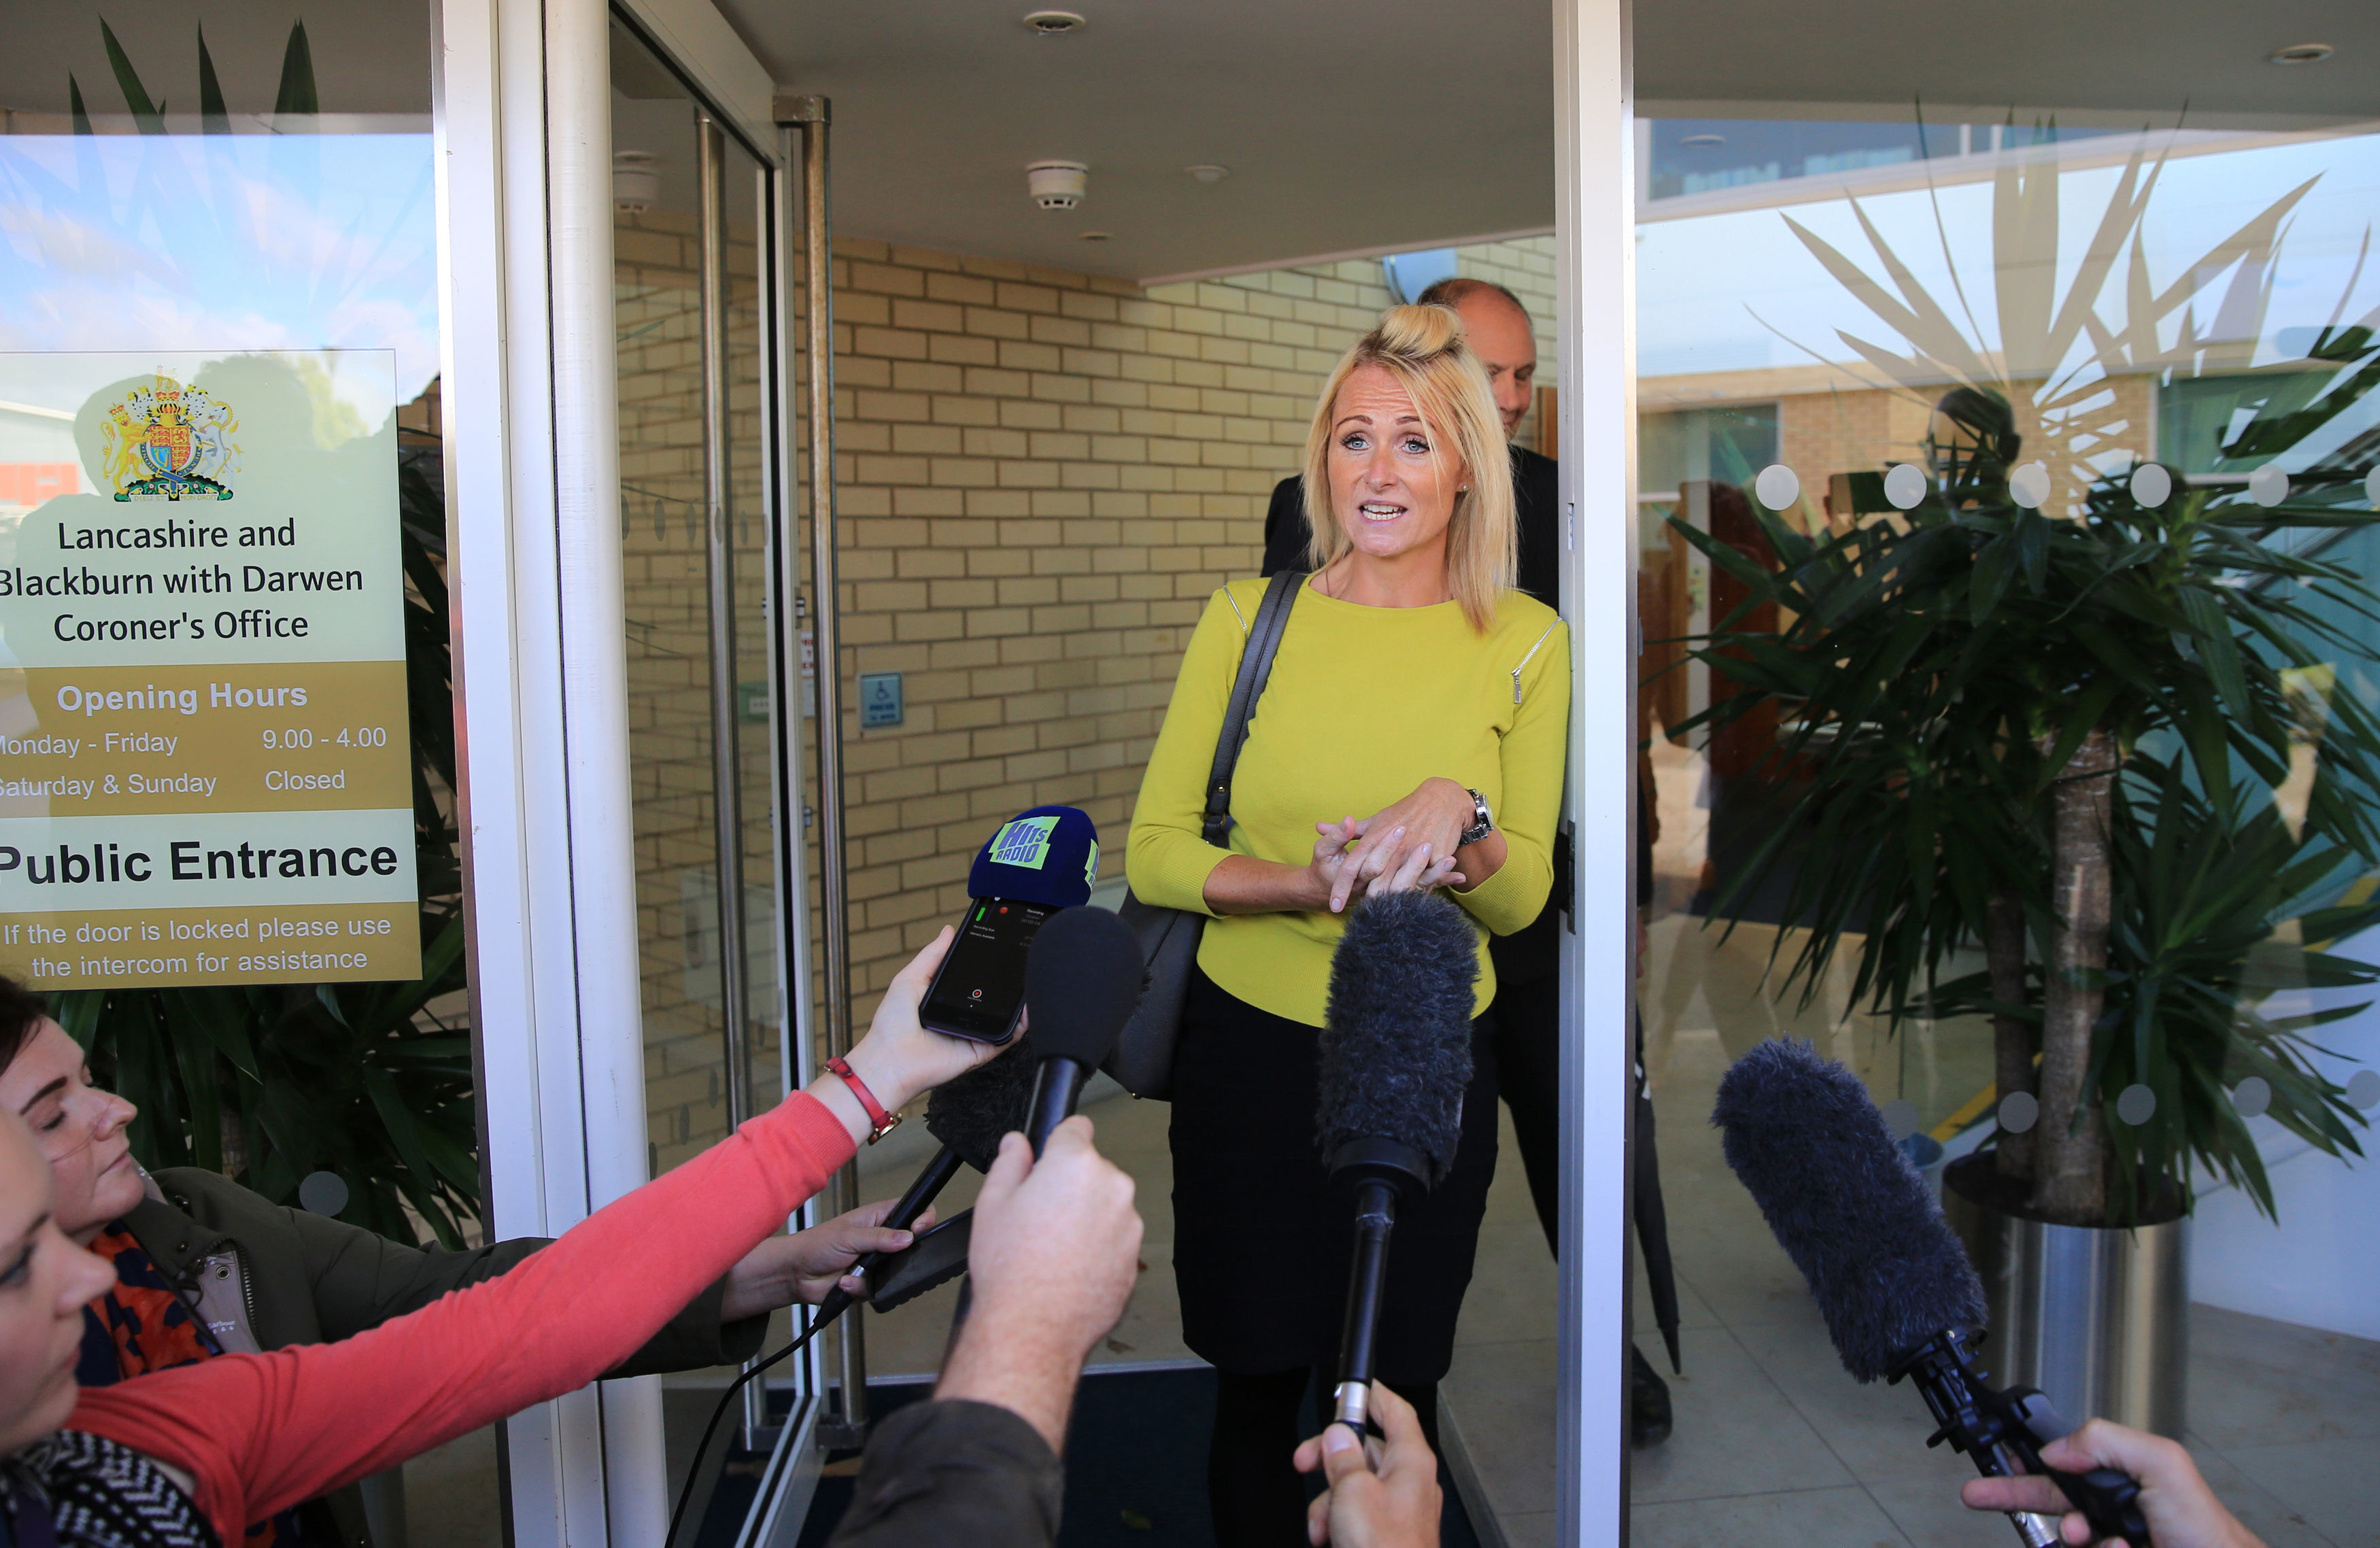 Kelly Ormerod speaking to the media at Preston Coroner's Court